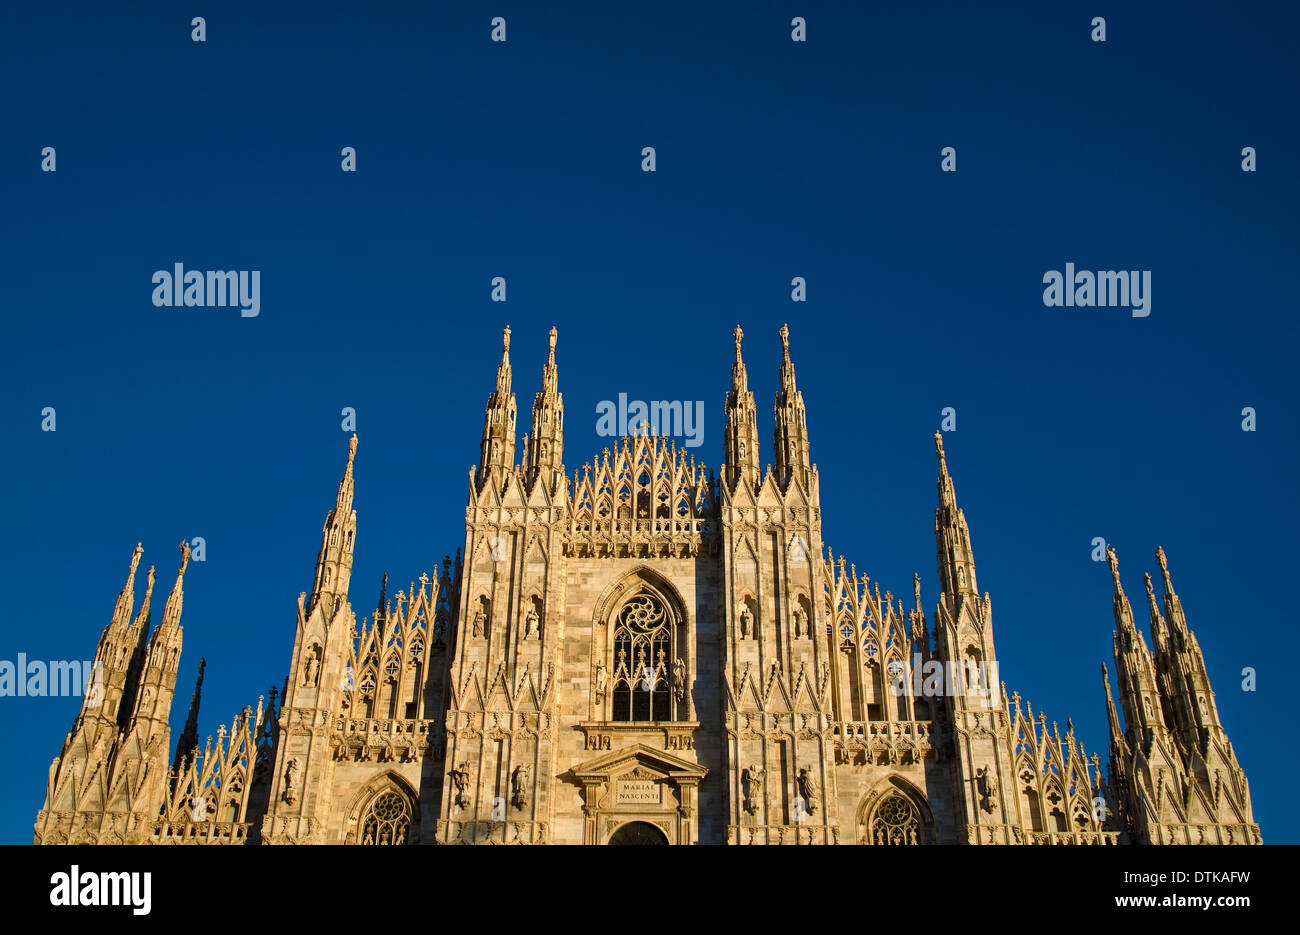 View of the Duomo of Milan. Italy. - Stock Image